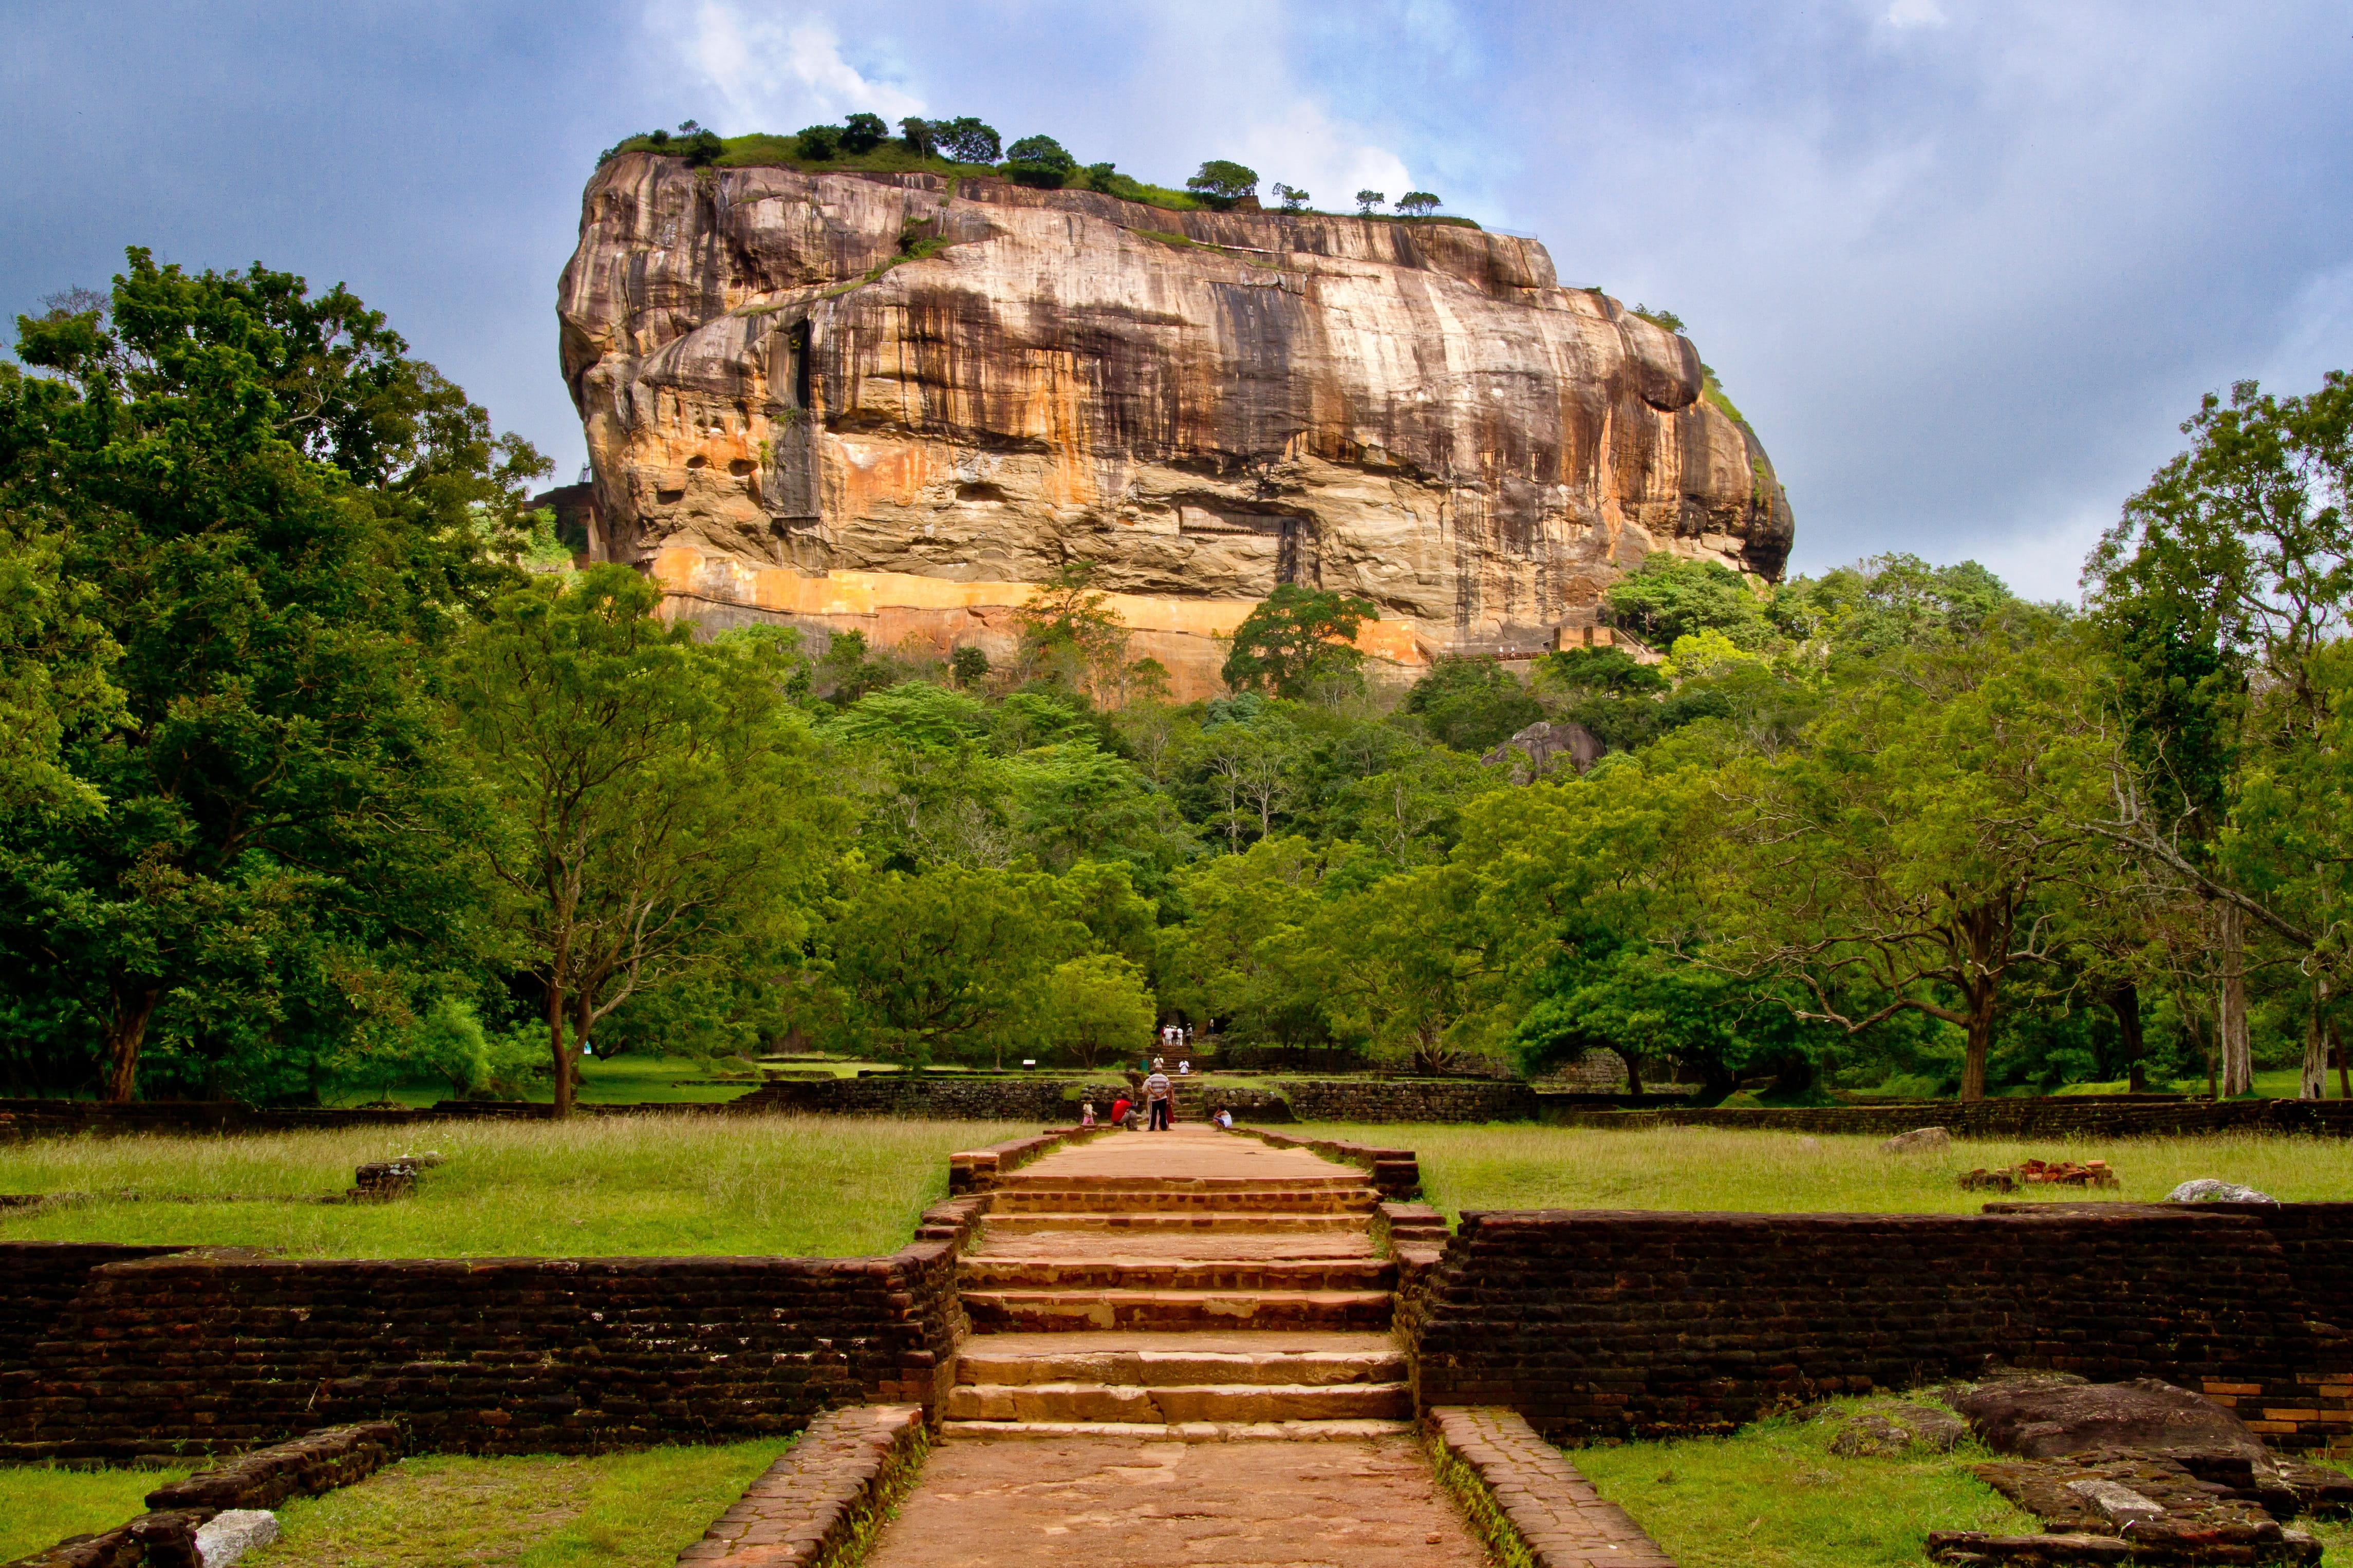 14-DAYS SRI LANKA DISCOVERY TOUR